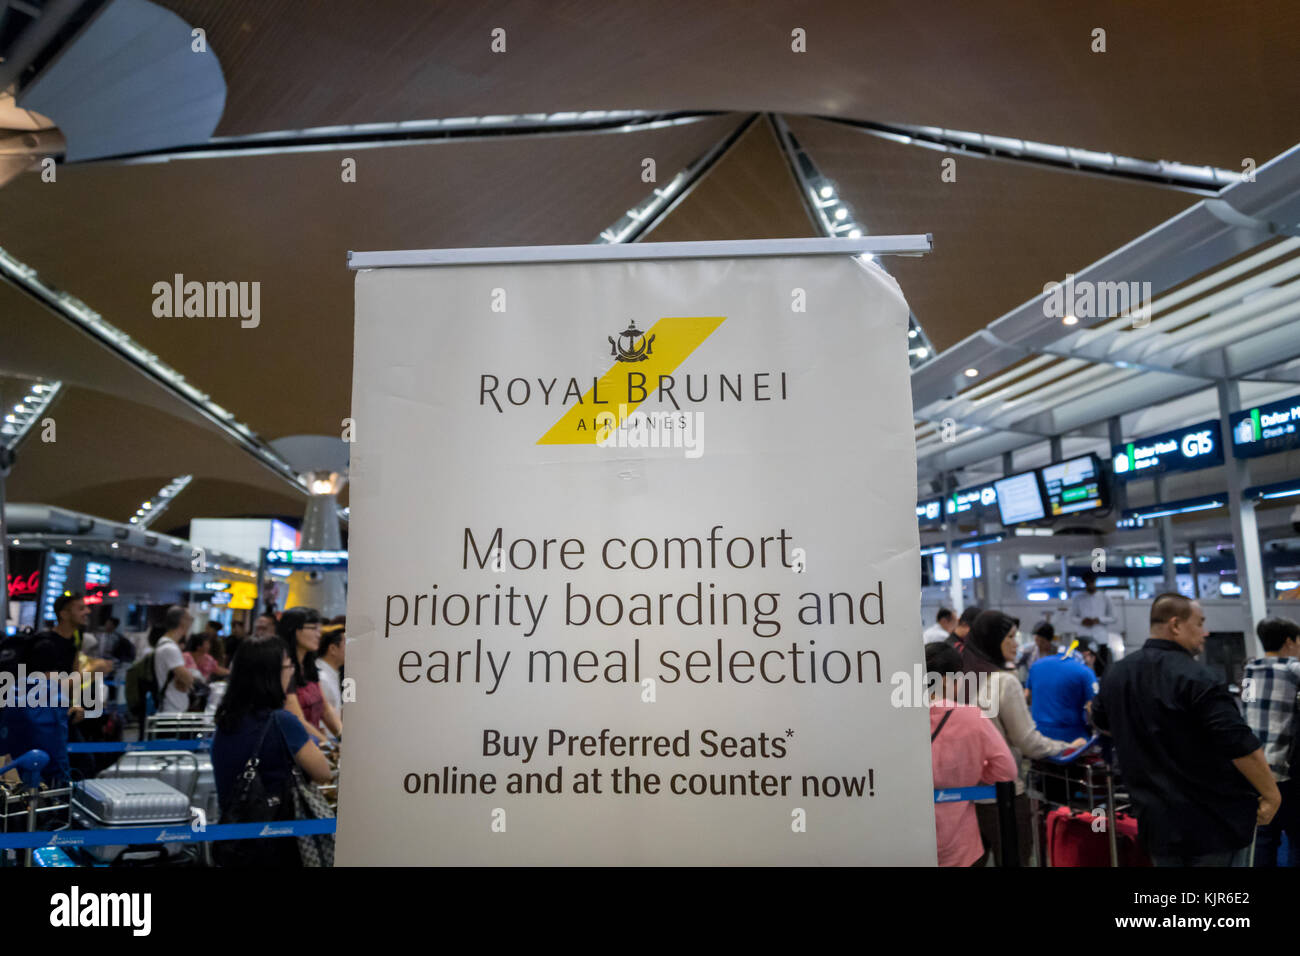 Airport immigration counter stock photos airport - Singapore airlines kuala lumpur office ...